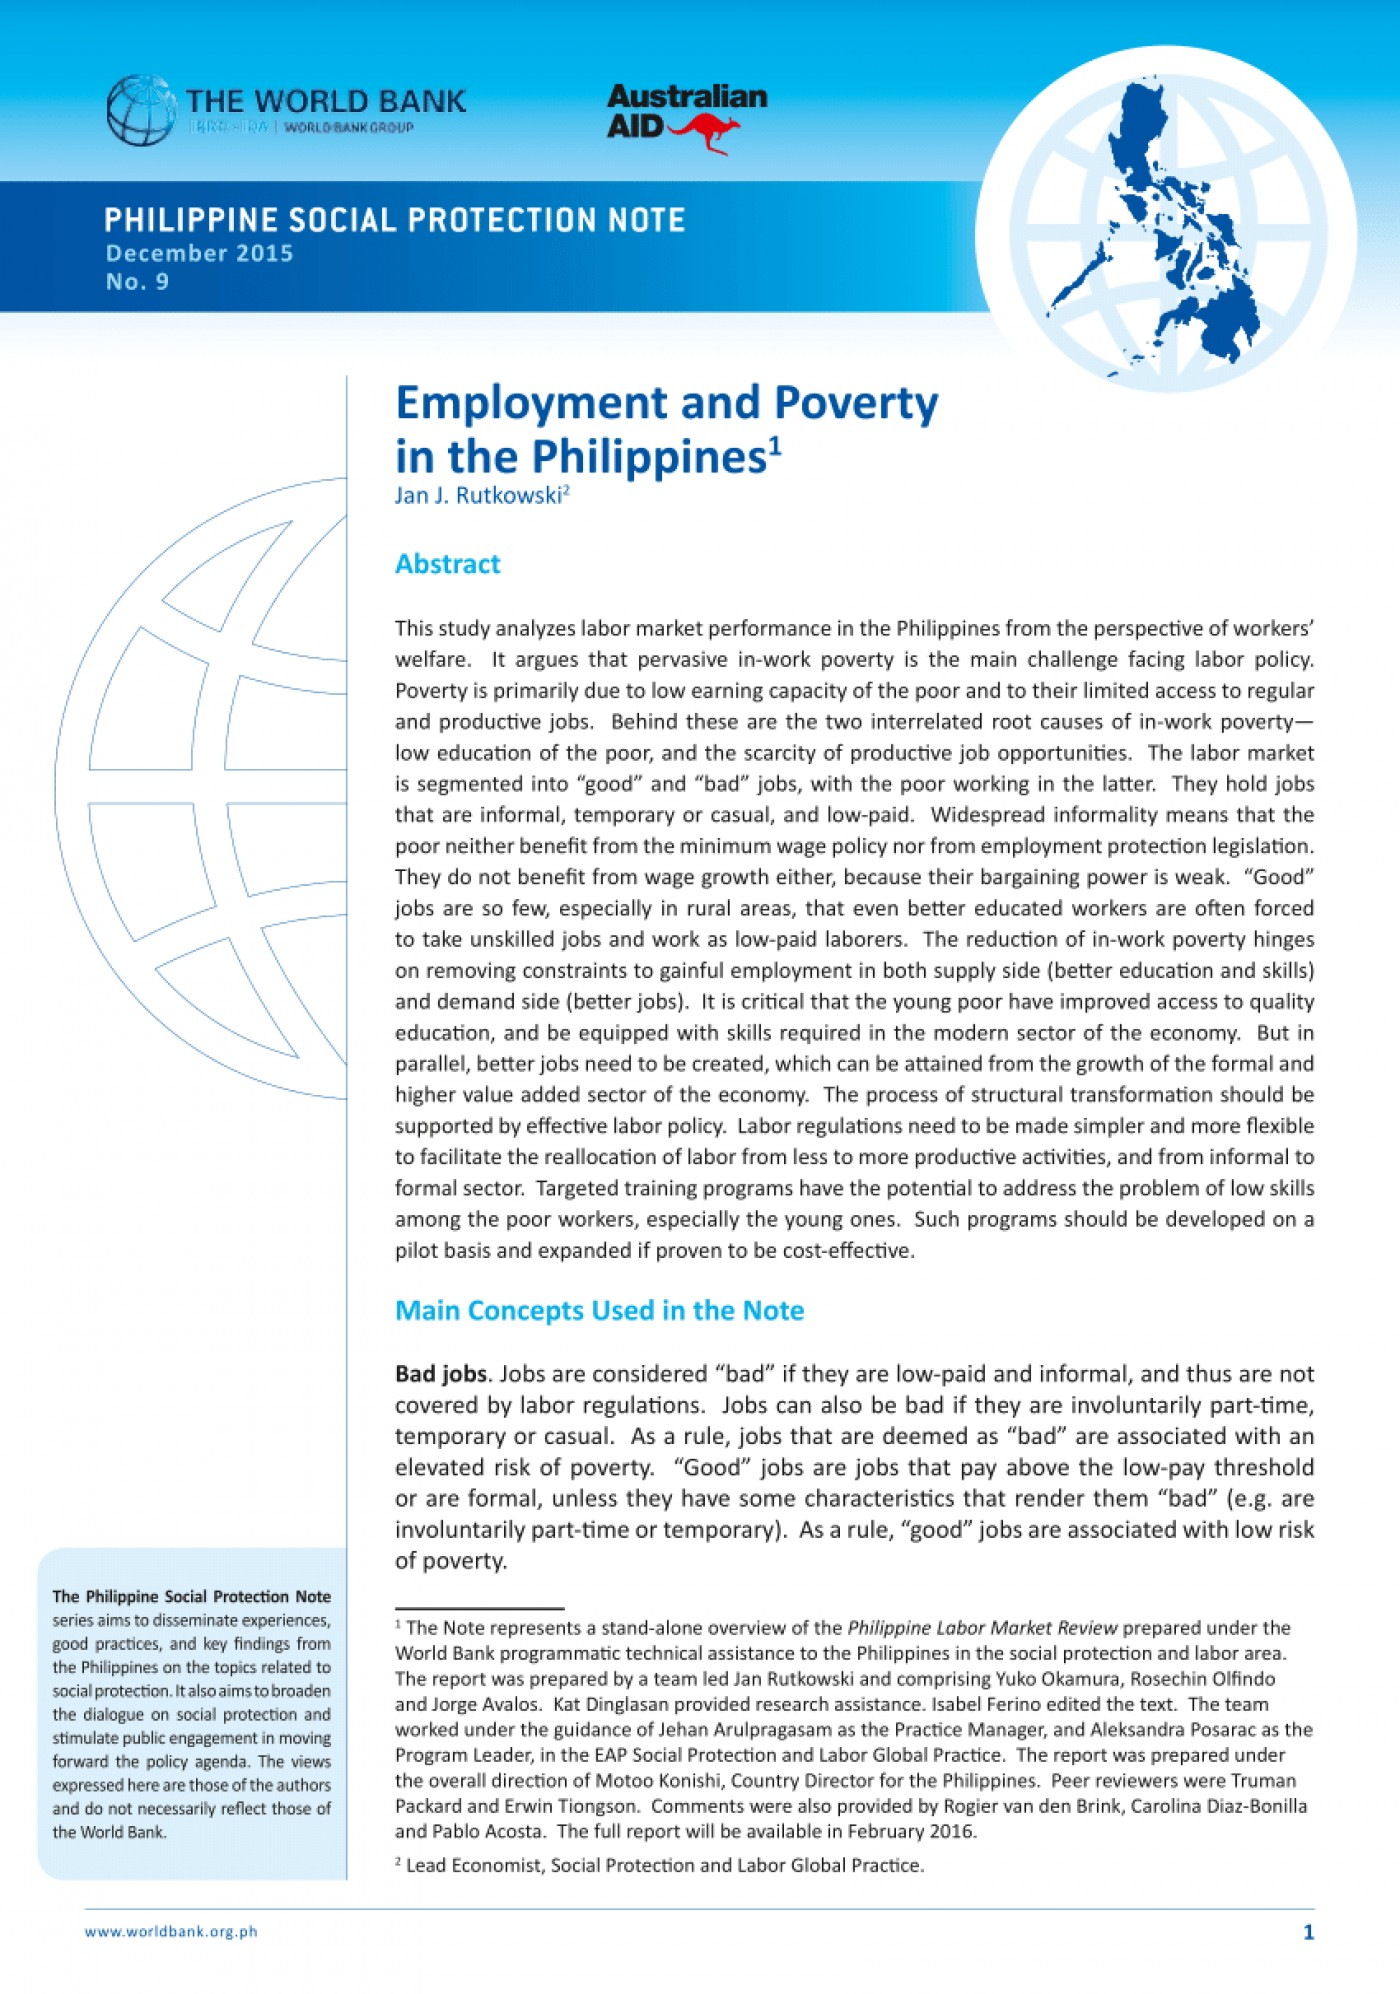 007 Poverty In The Philippines Research Paper Abstract Remarkable 1400